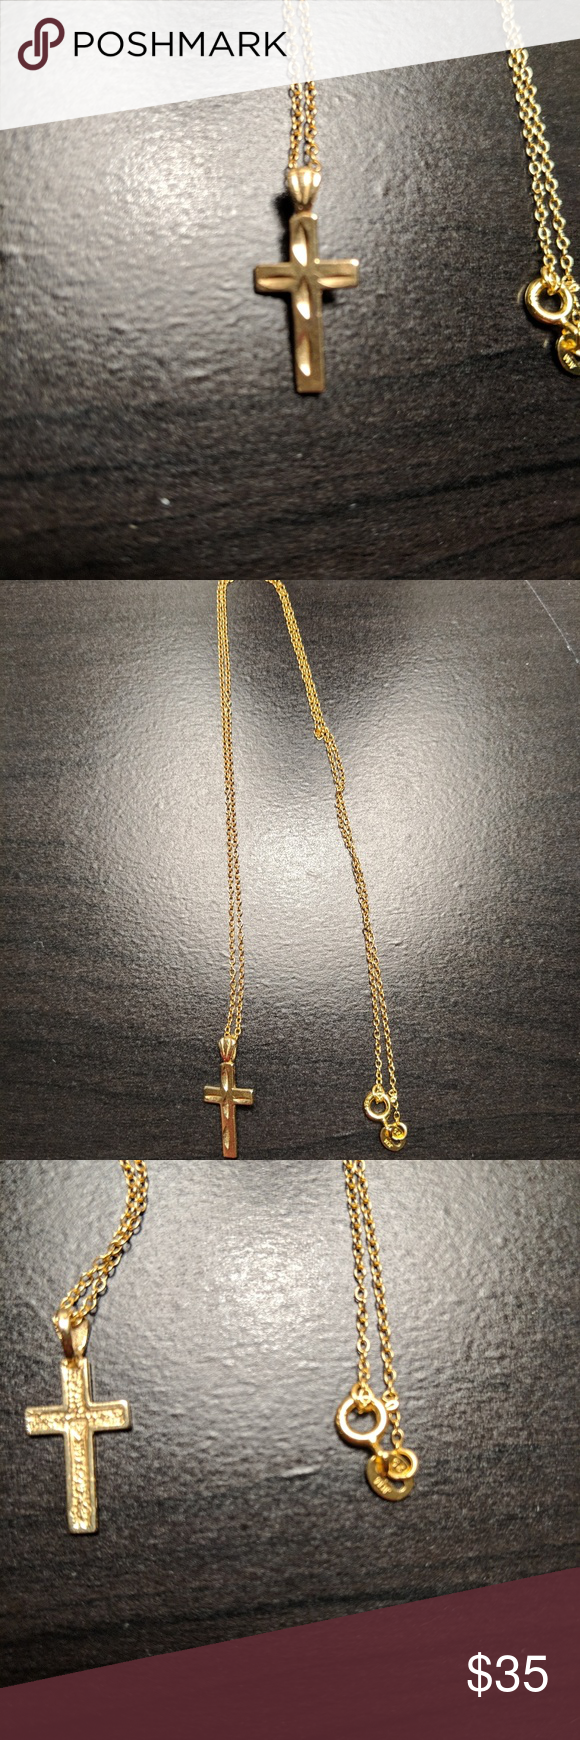 10kt Gold Cross 10kt Gold Cross With An 18in Chain The Cross Itself Is Three Quarters Of An Inch In Length Jewelry Necklaces 10kt Gold Gold Cross Gold